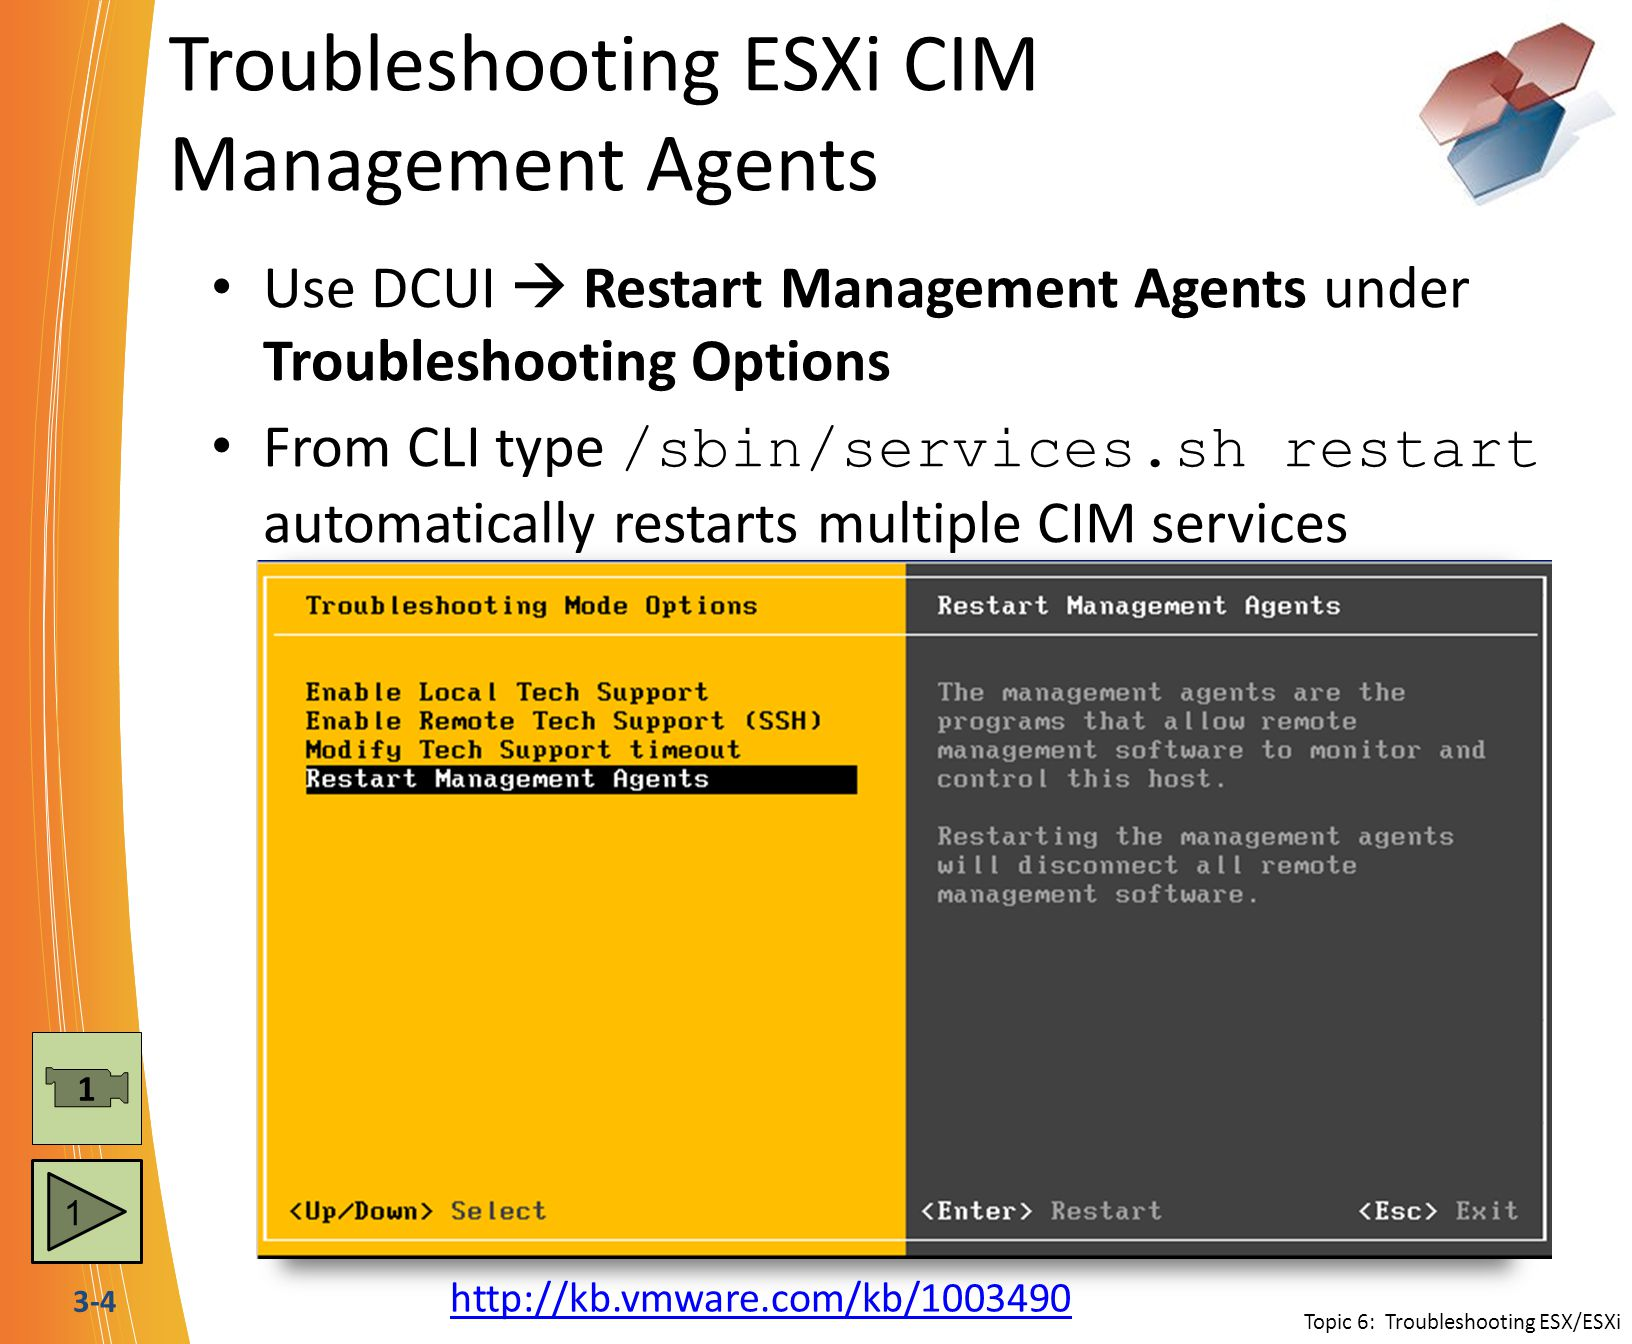 3-4 Troubleshooting ESXi CIM Management Agents Use DCUI  Restart Management Agents under Troubleshooting Options From CLI type /sbin/services.sh rest